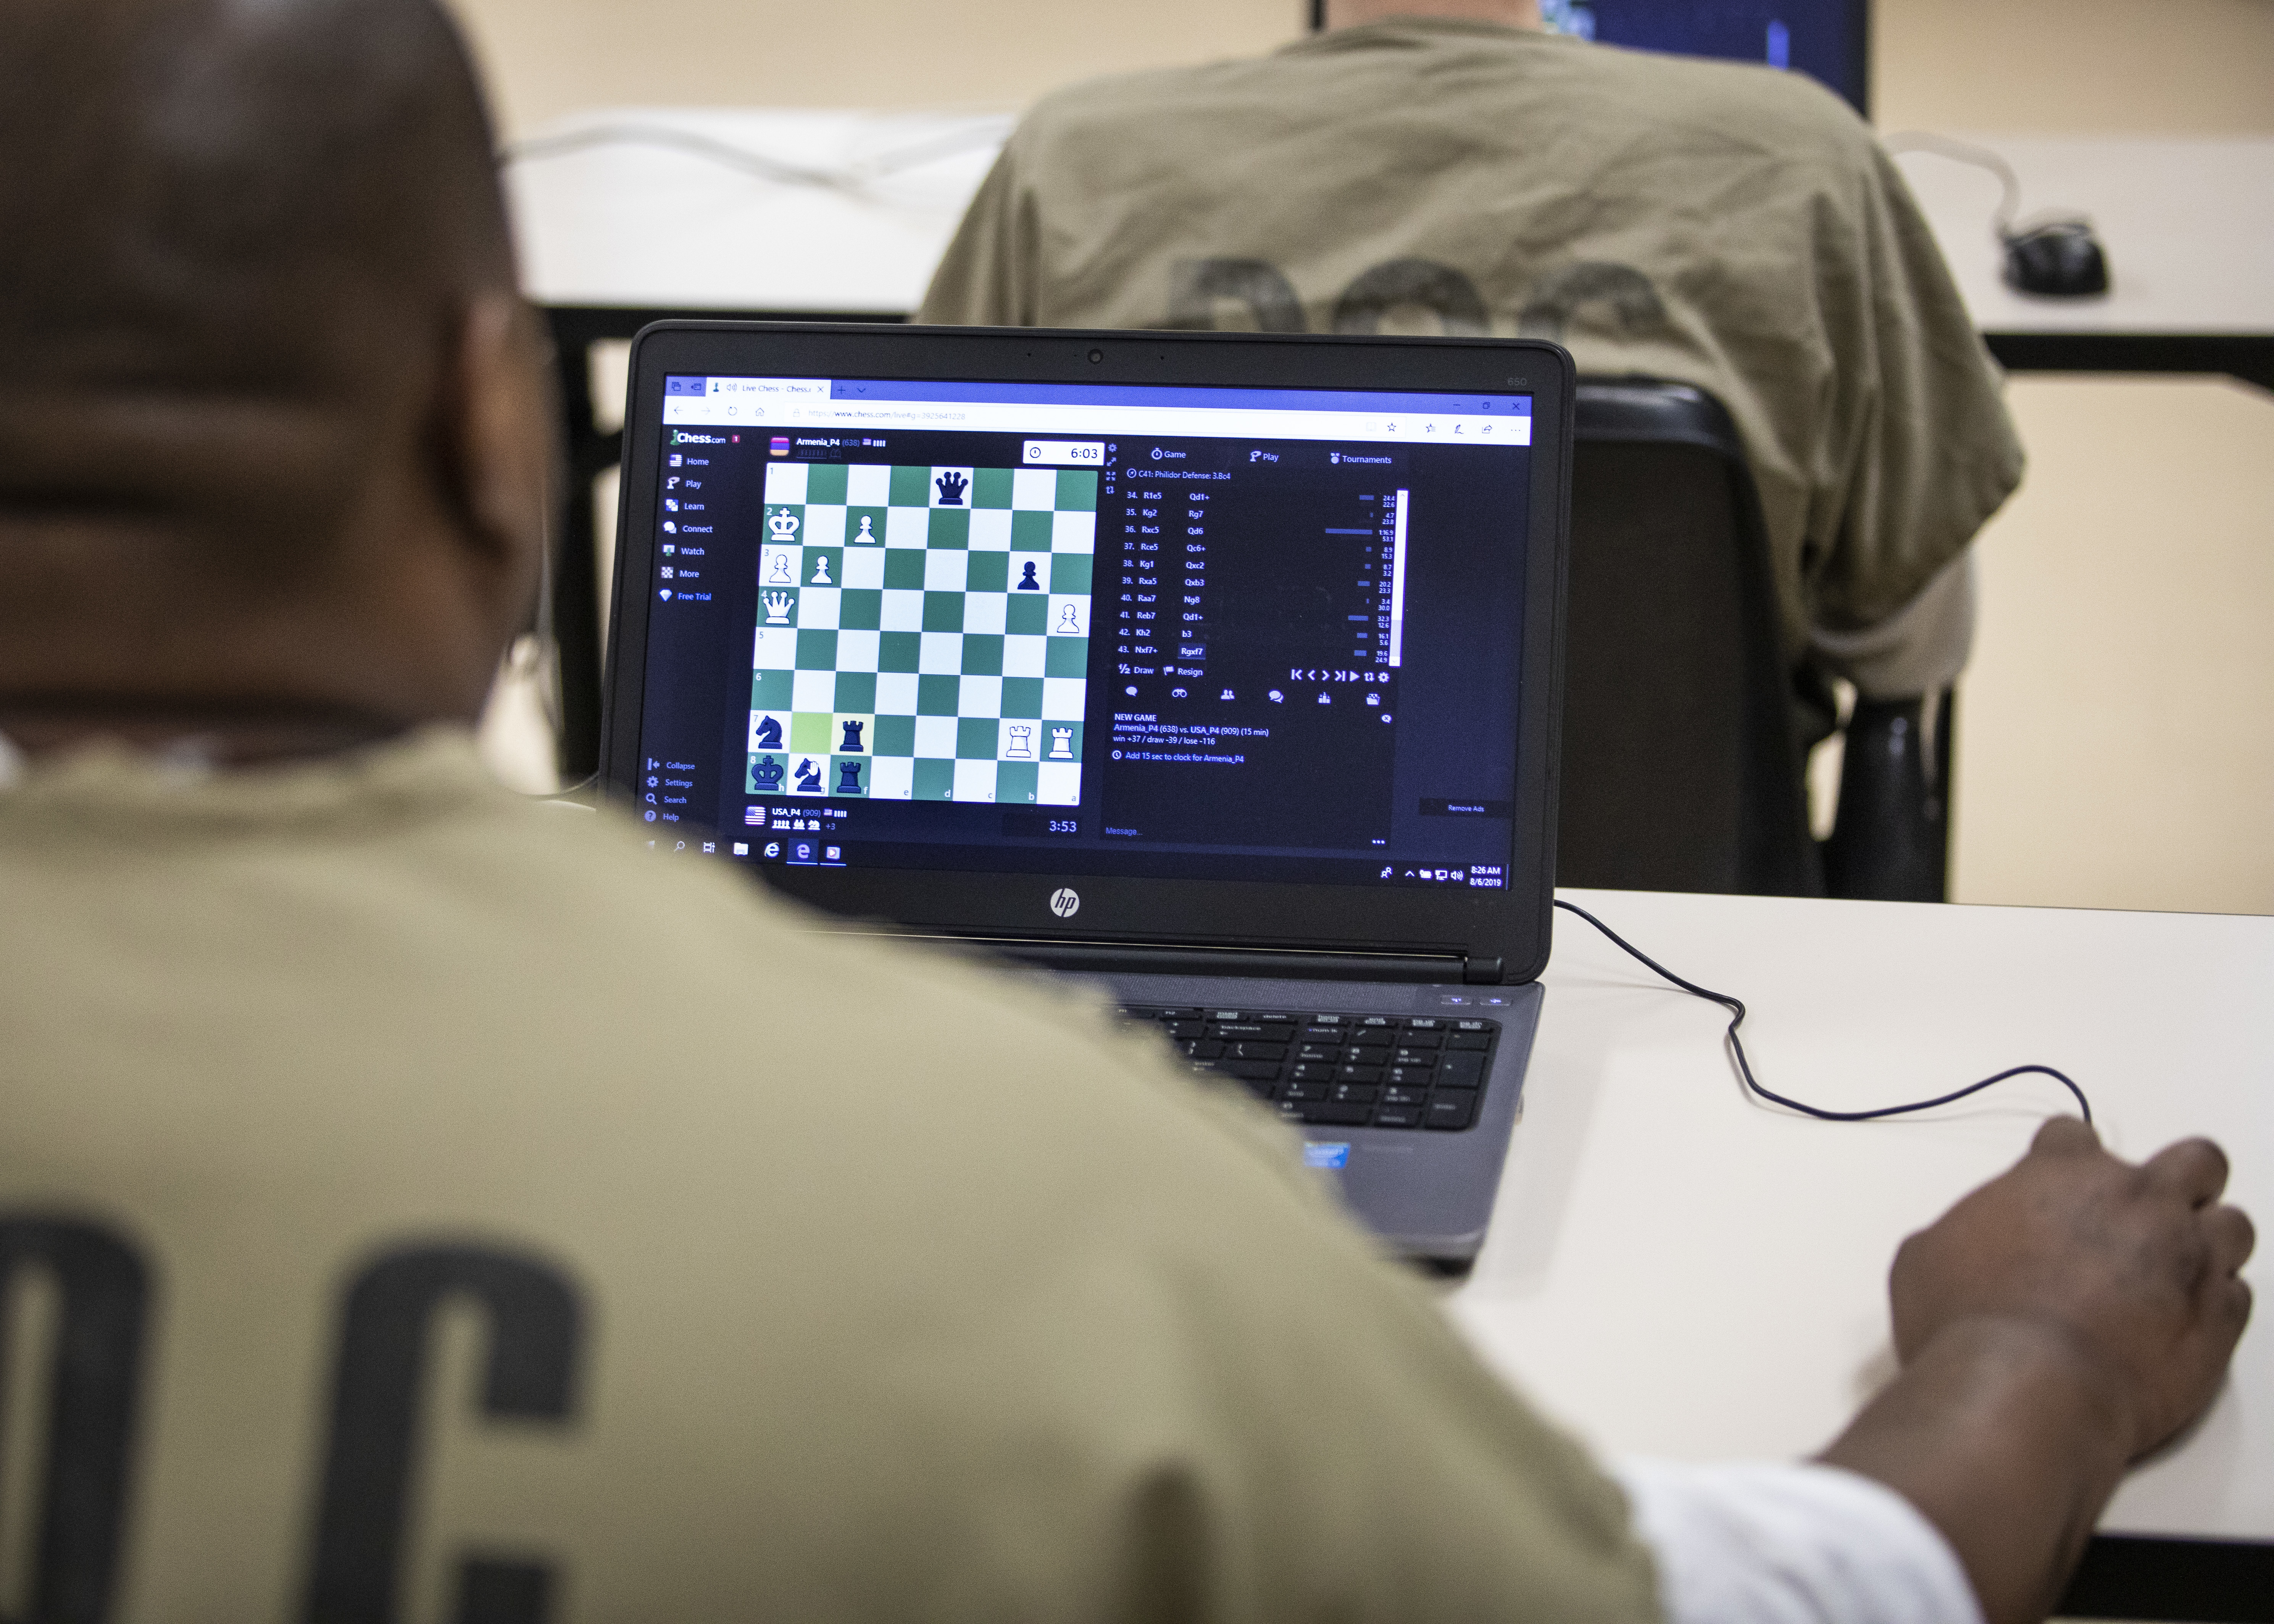 Top Cook County Jail chess players take on the world - Chicago Sun-Times